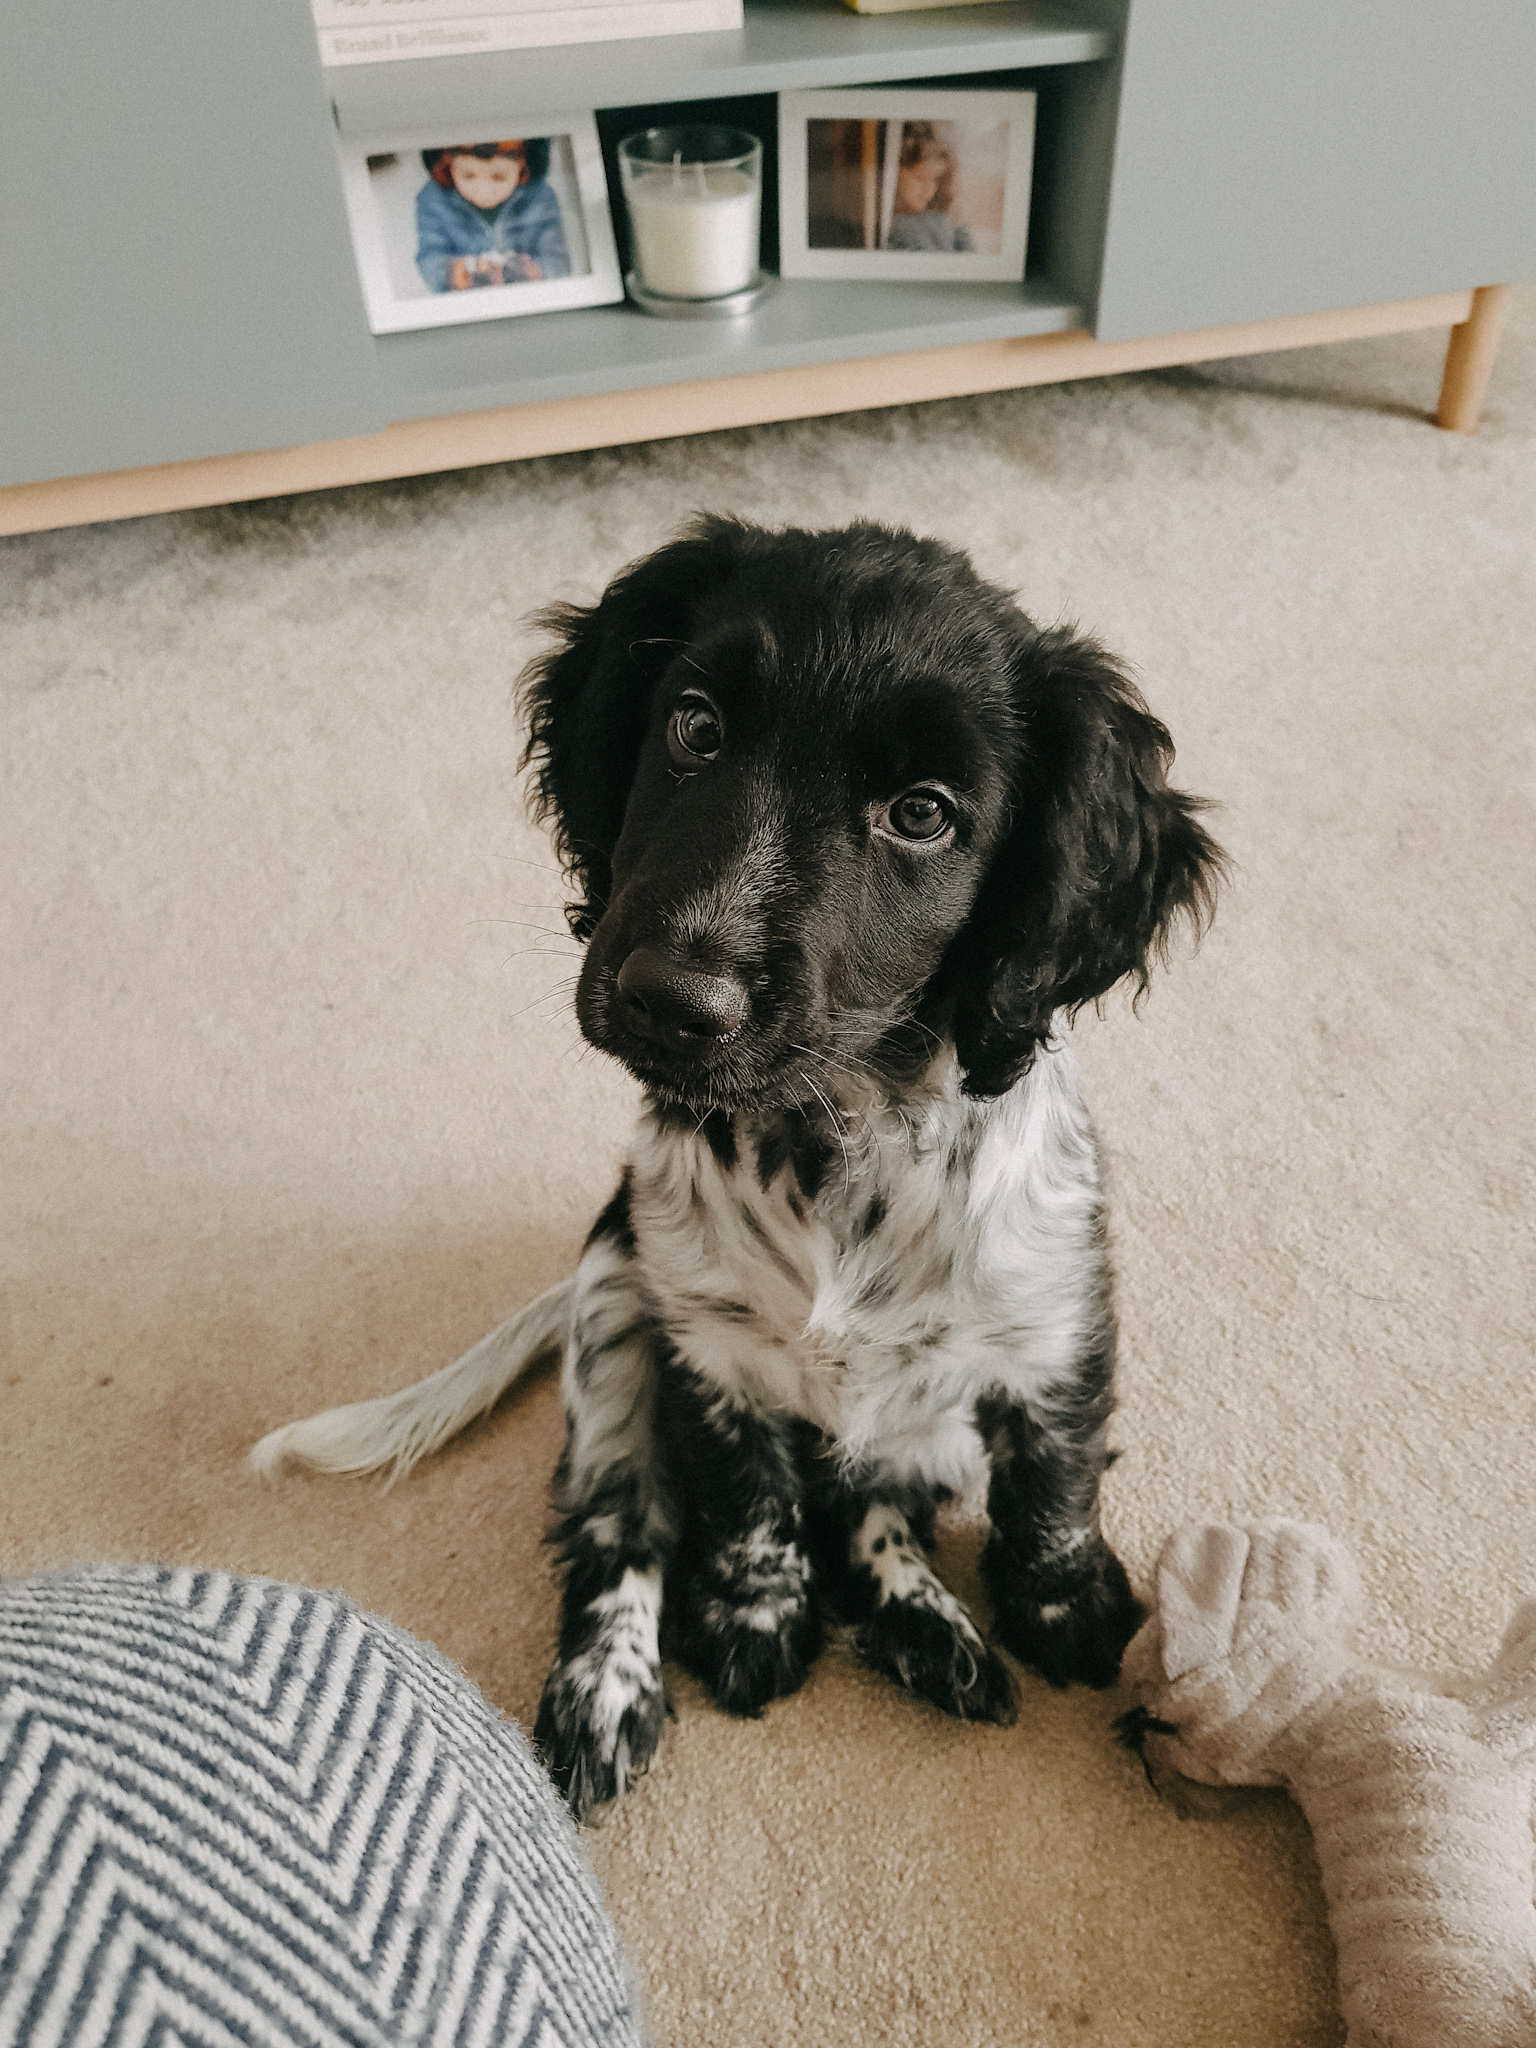 Blue the Cocker Spaniel Puppy